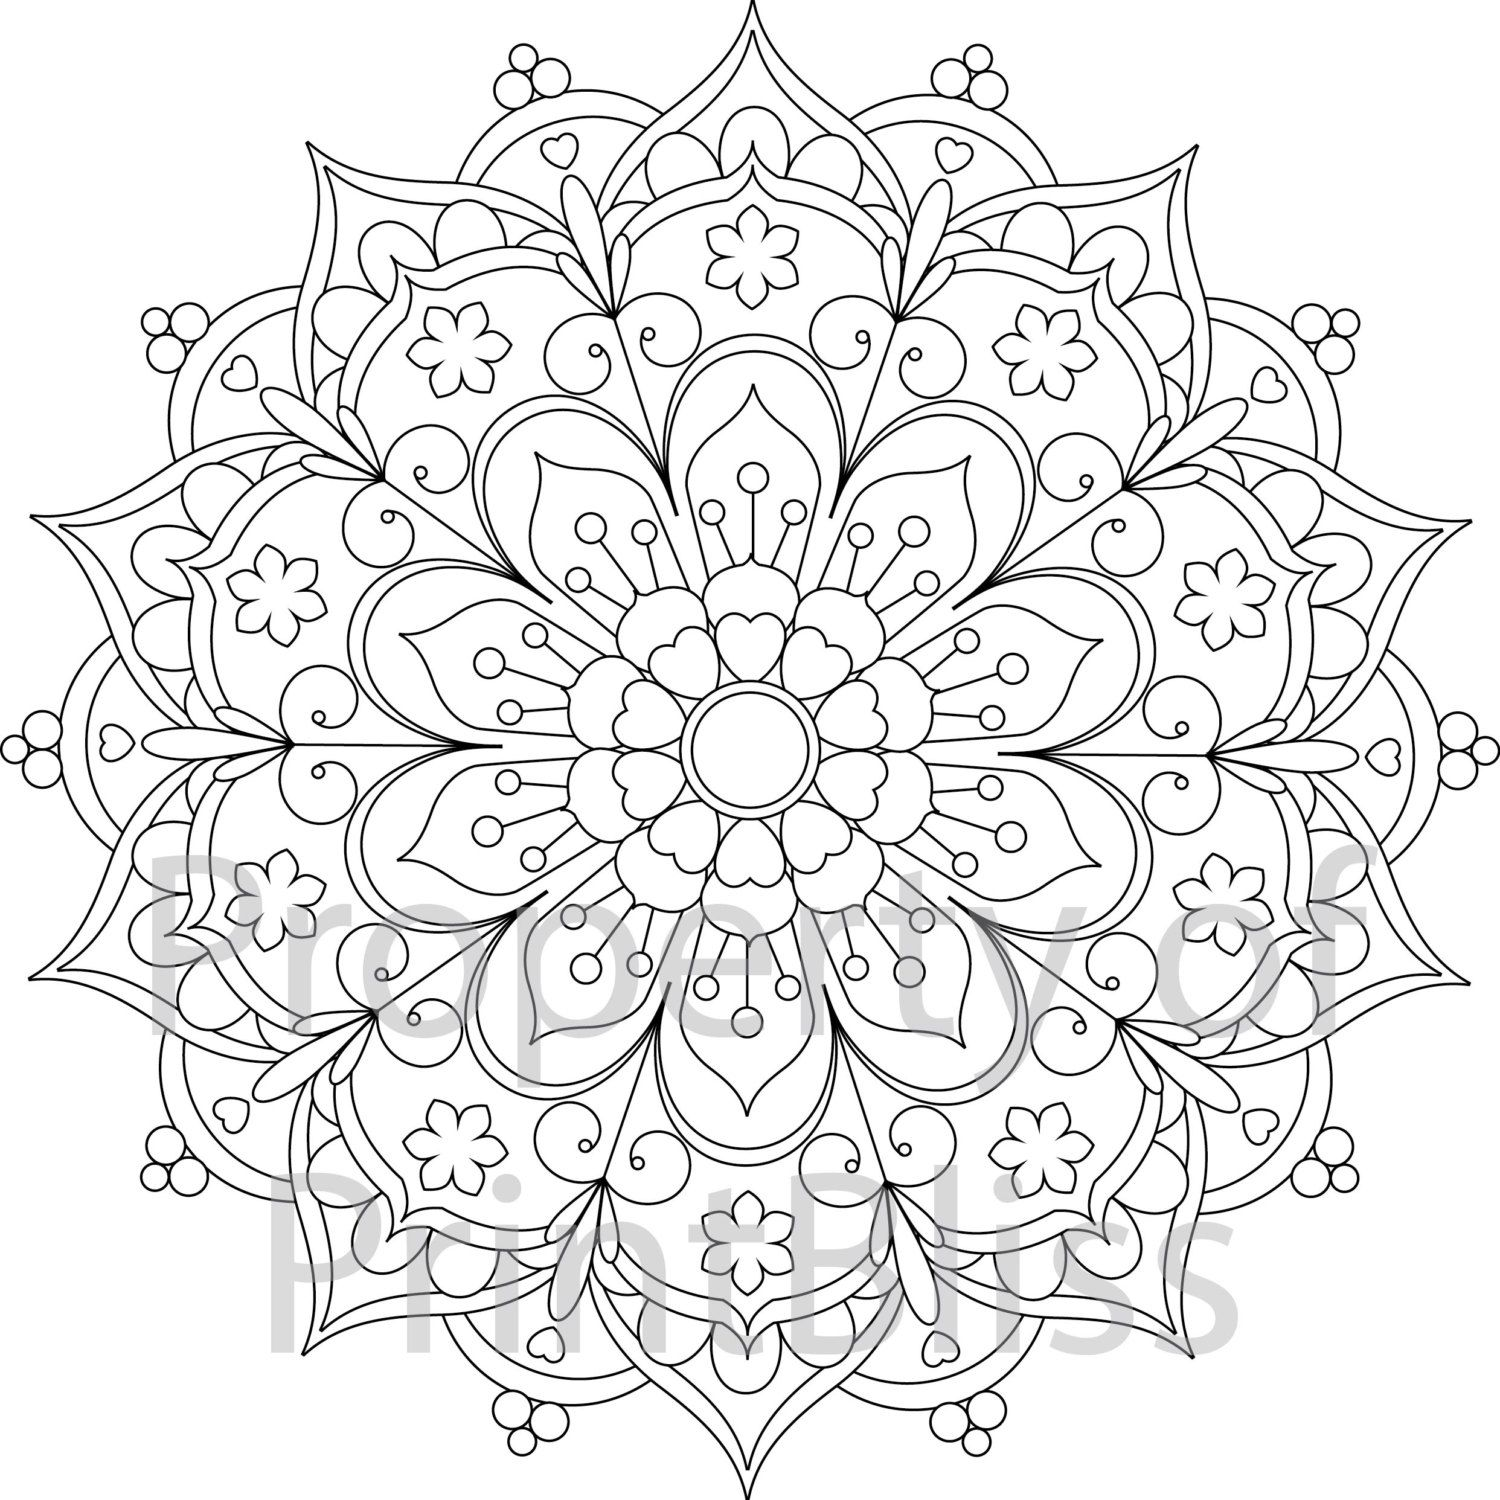 1500x1500 Flower Mandala Printable Coloring Page Mandala Printable